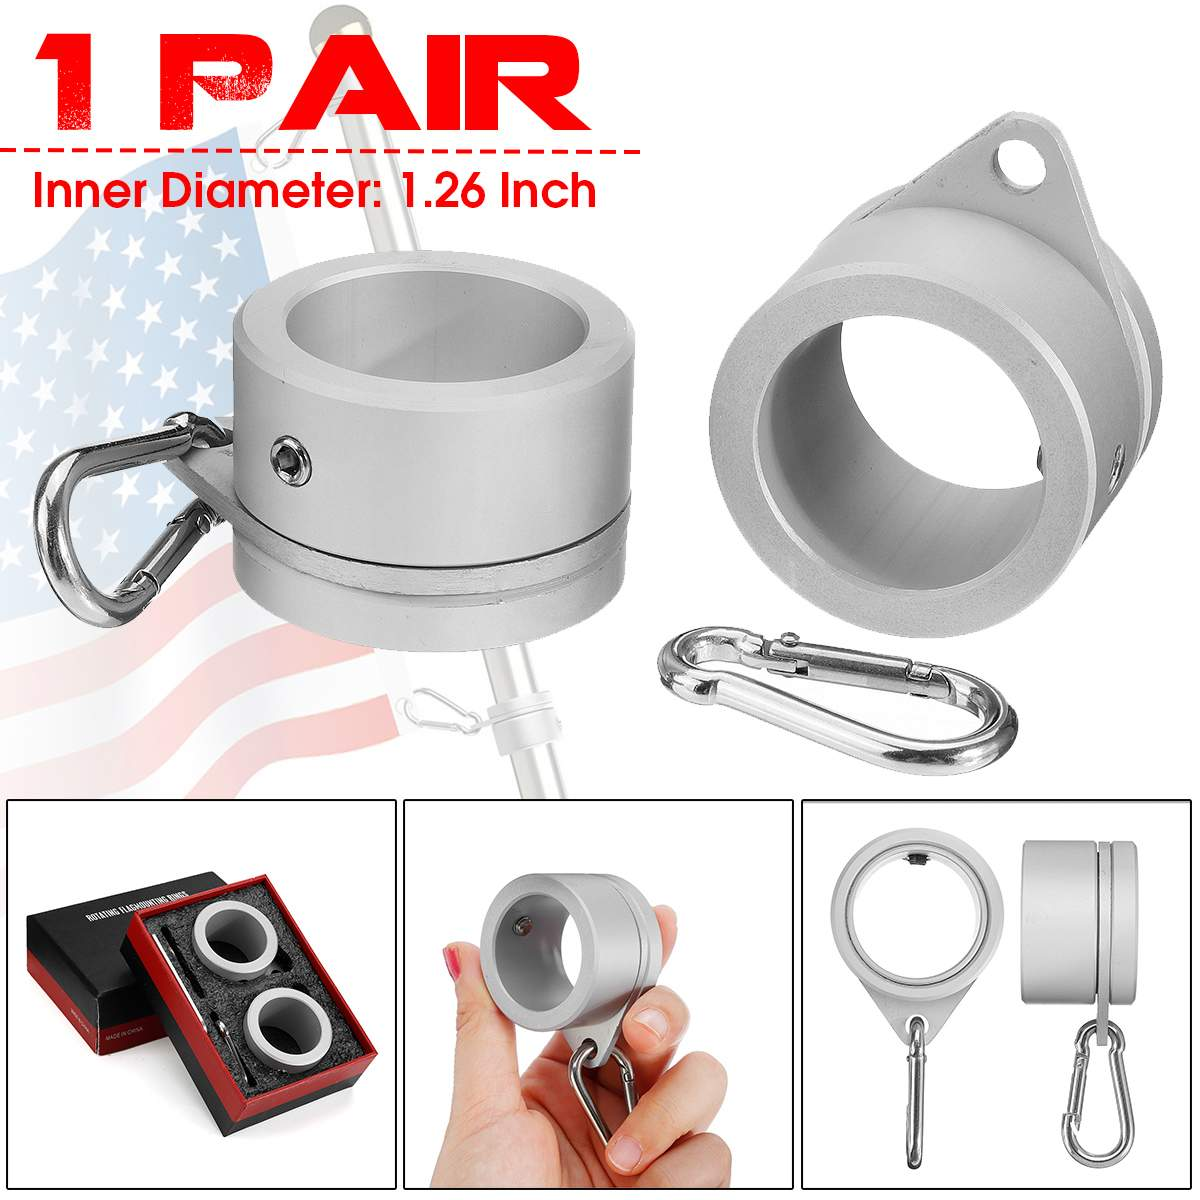 1Pair Aluminum Alloy Flag Pole Rings 360 Degree Rotating Flagpole Flag Mounting Rings Kit With Carabiner For 1.26 Inch Flagpole